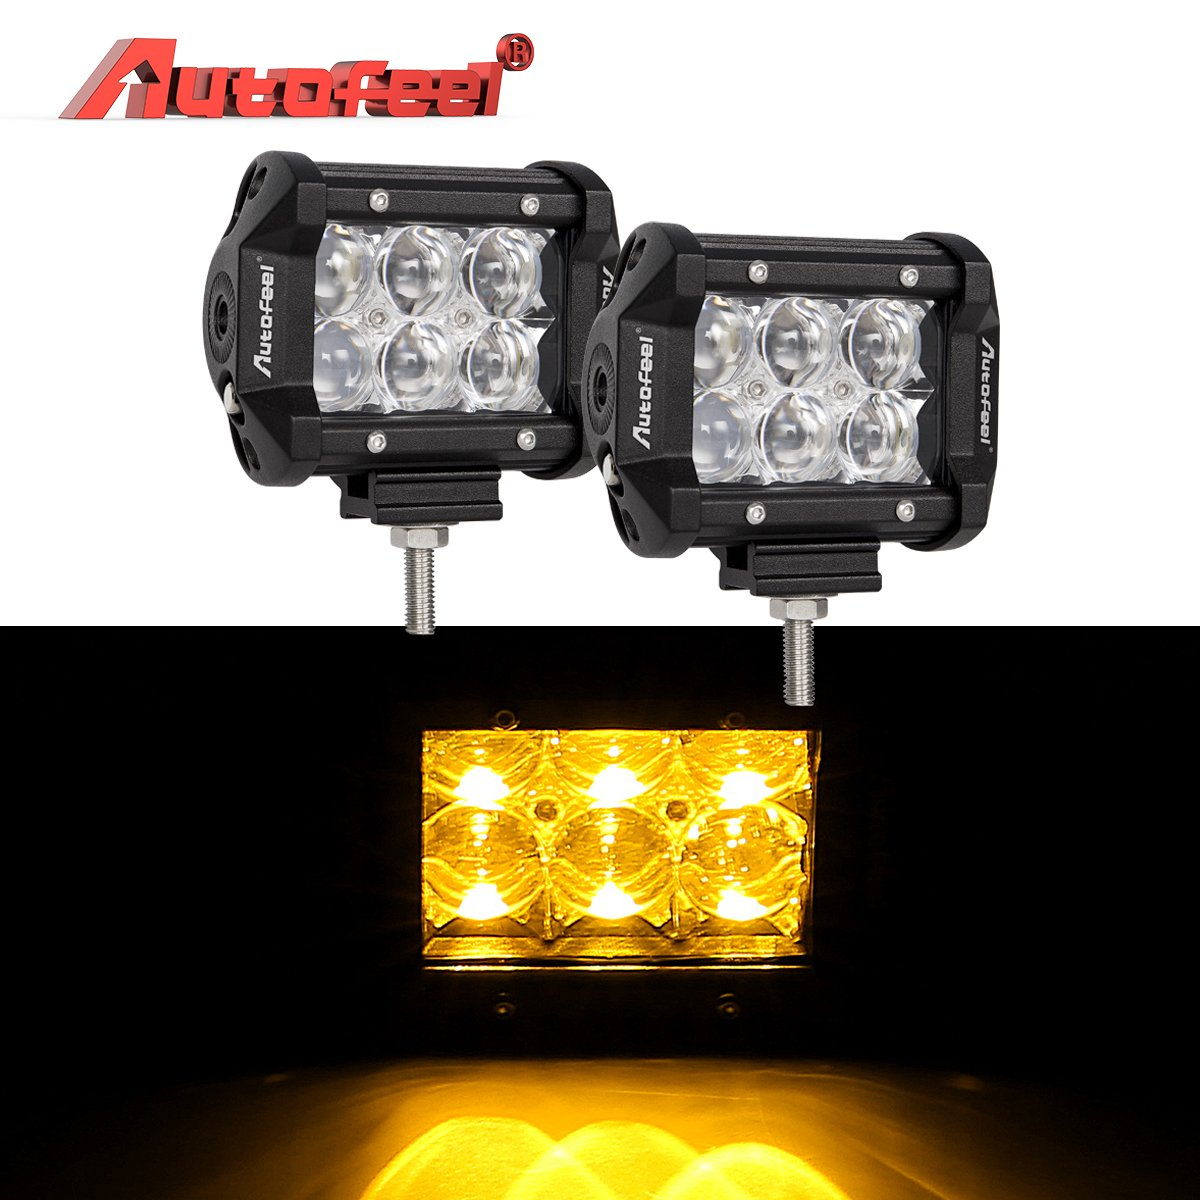 hight resolution of cheap 4x4 off road lights find 4x4 off road lights deals on line at picture of 30quot 180w double row led light bar includes wiring harness